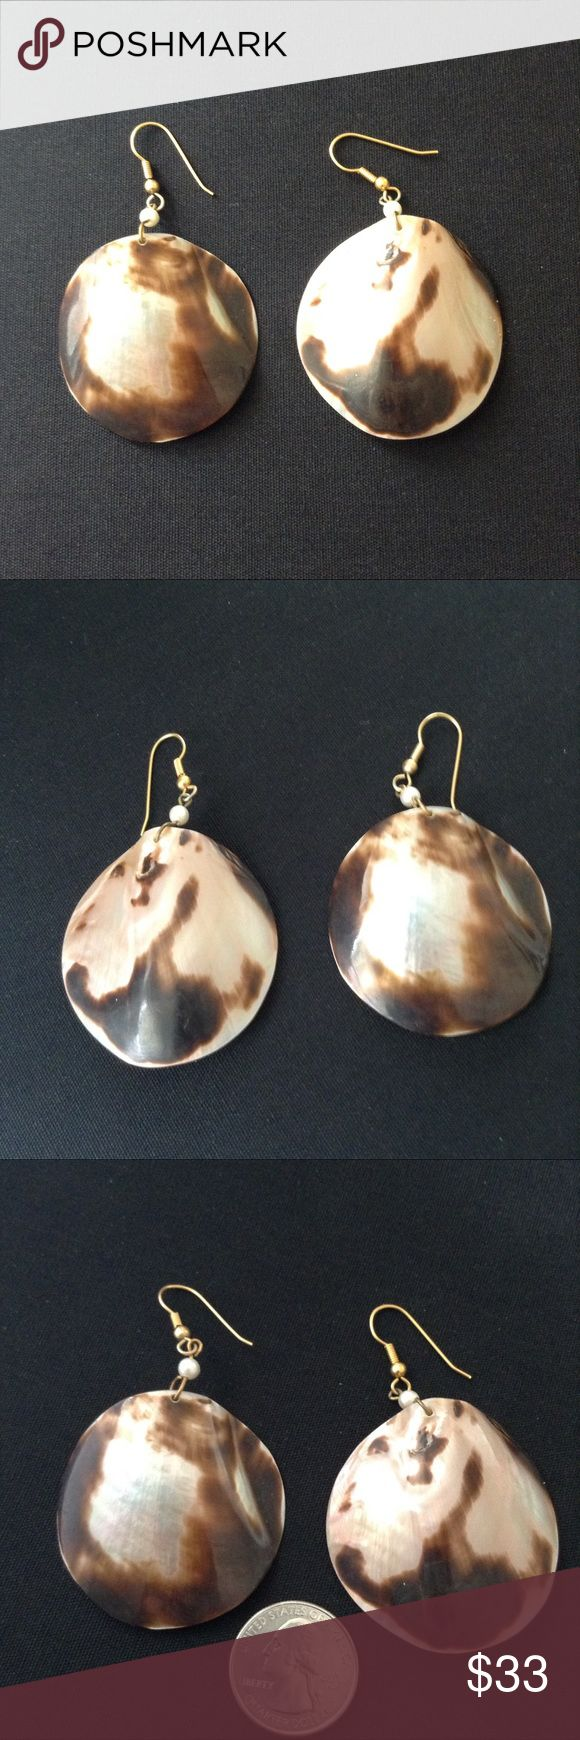 """Vintage Large Round Shell Earrings 1970's natural nacre shell earrings. Mottled brown with shimmering iridescent pearl hues. Translucent seashell, light, for pierced ears. The size and convex shape are marvelous. Almost 3"""" drop. Shell itself is 1&3/4"""" dia.    Excellent vintage condition. The sea is calling.... Vintage Jewelry Earrings"""